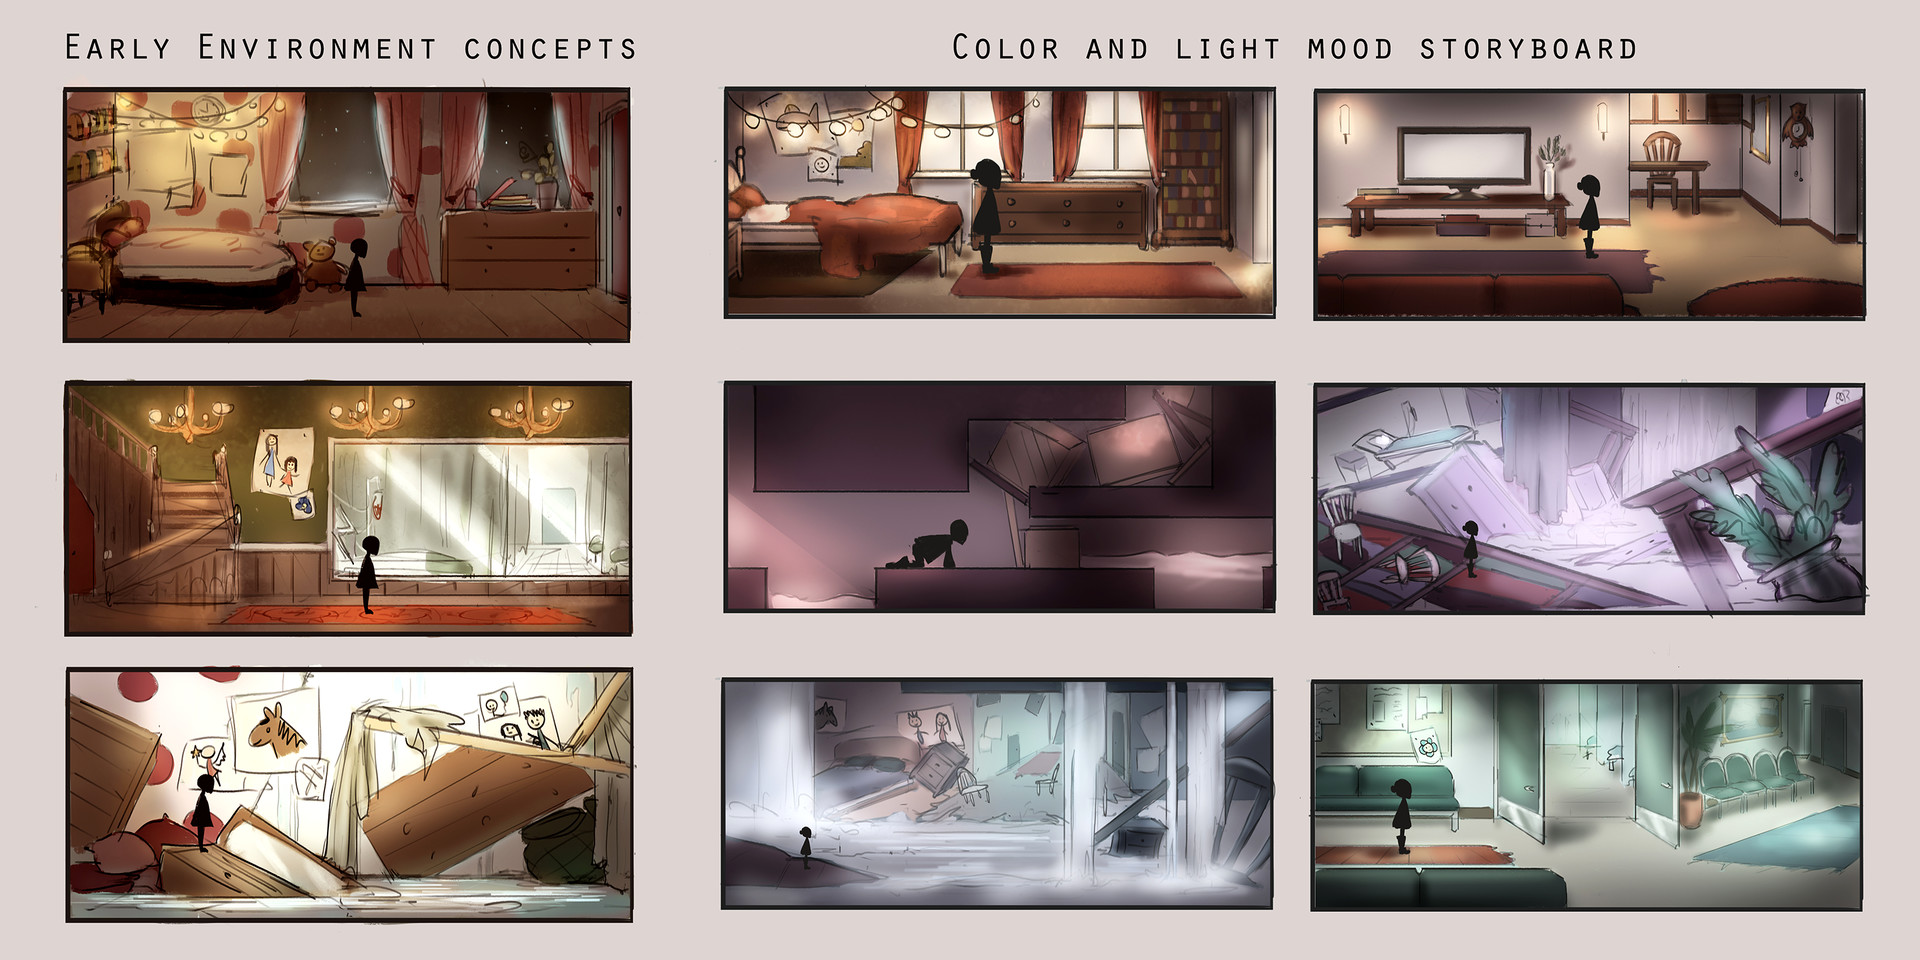 Emelie johansson color and mood storyboards